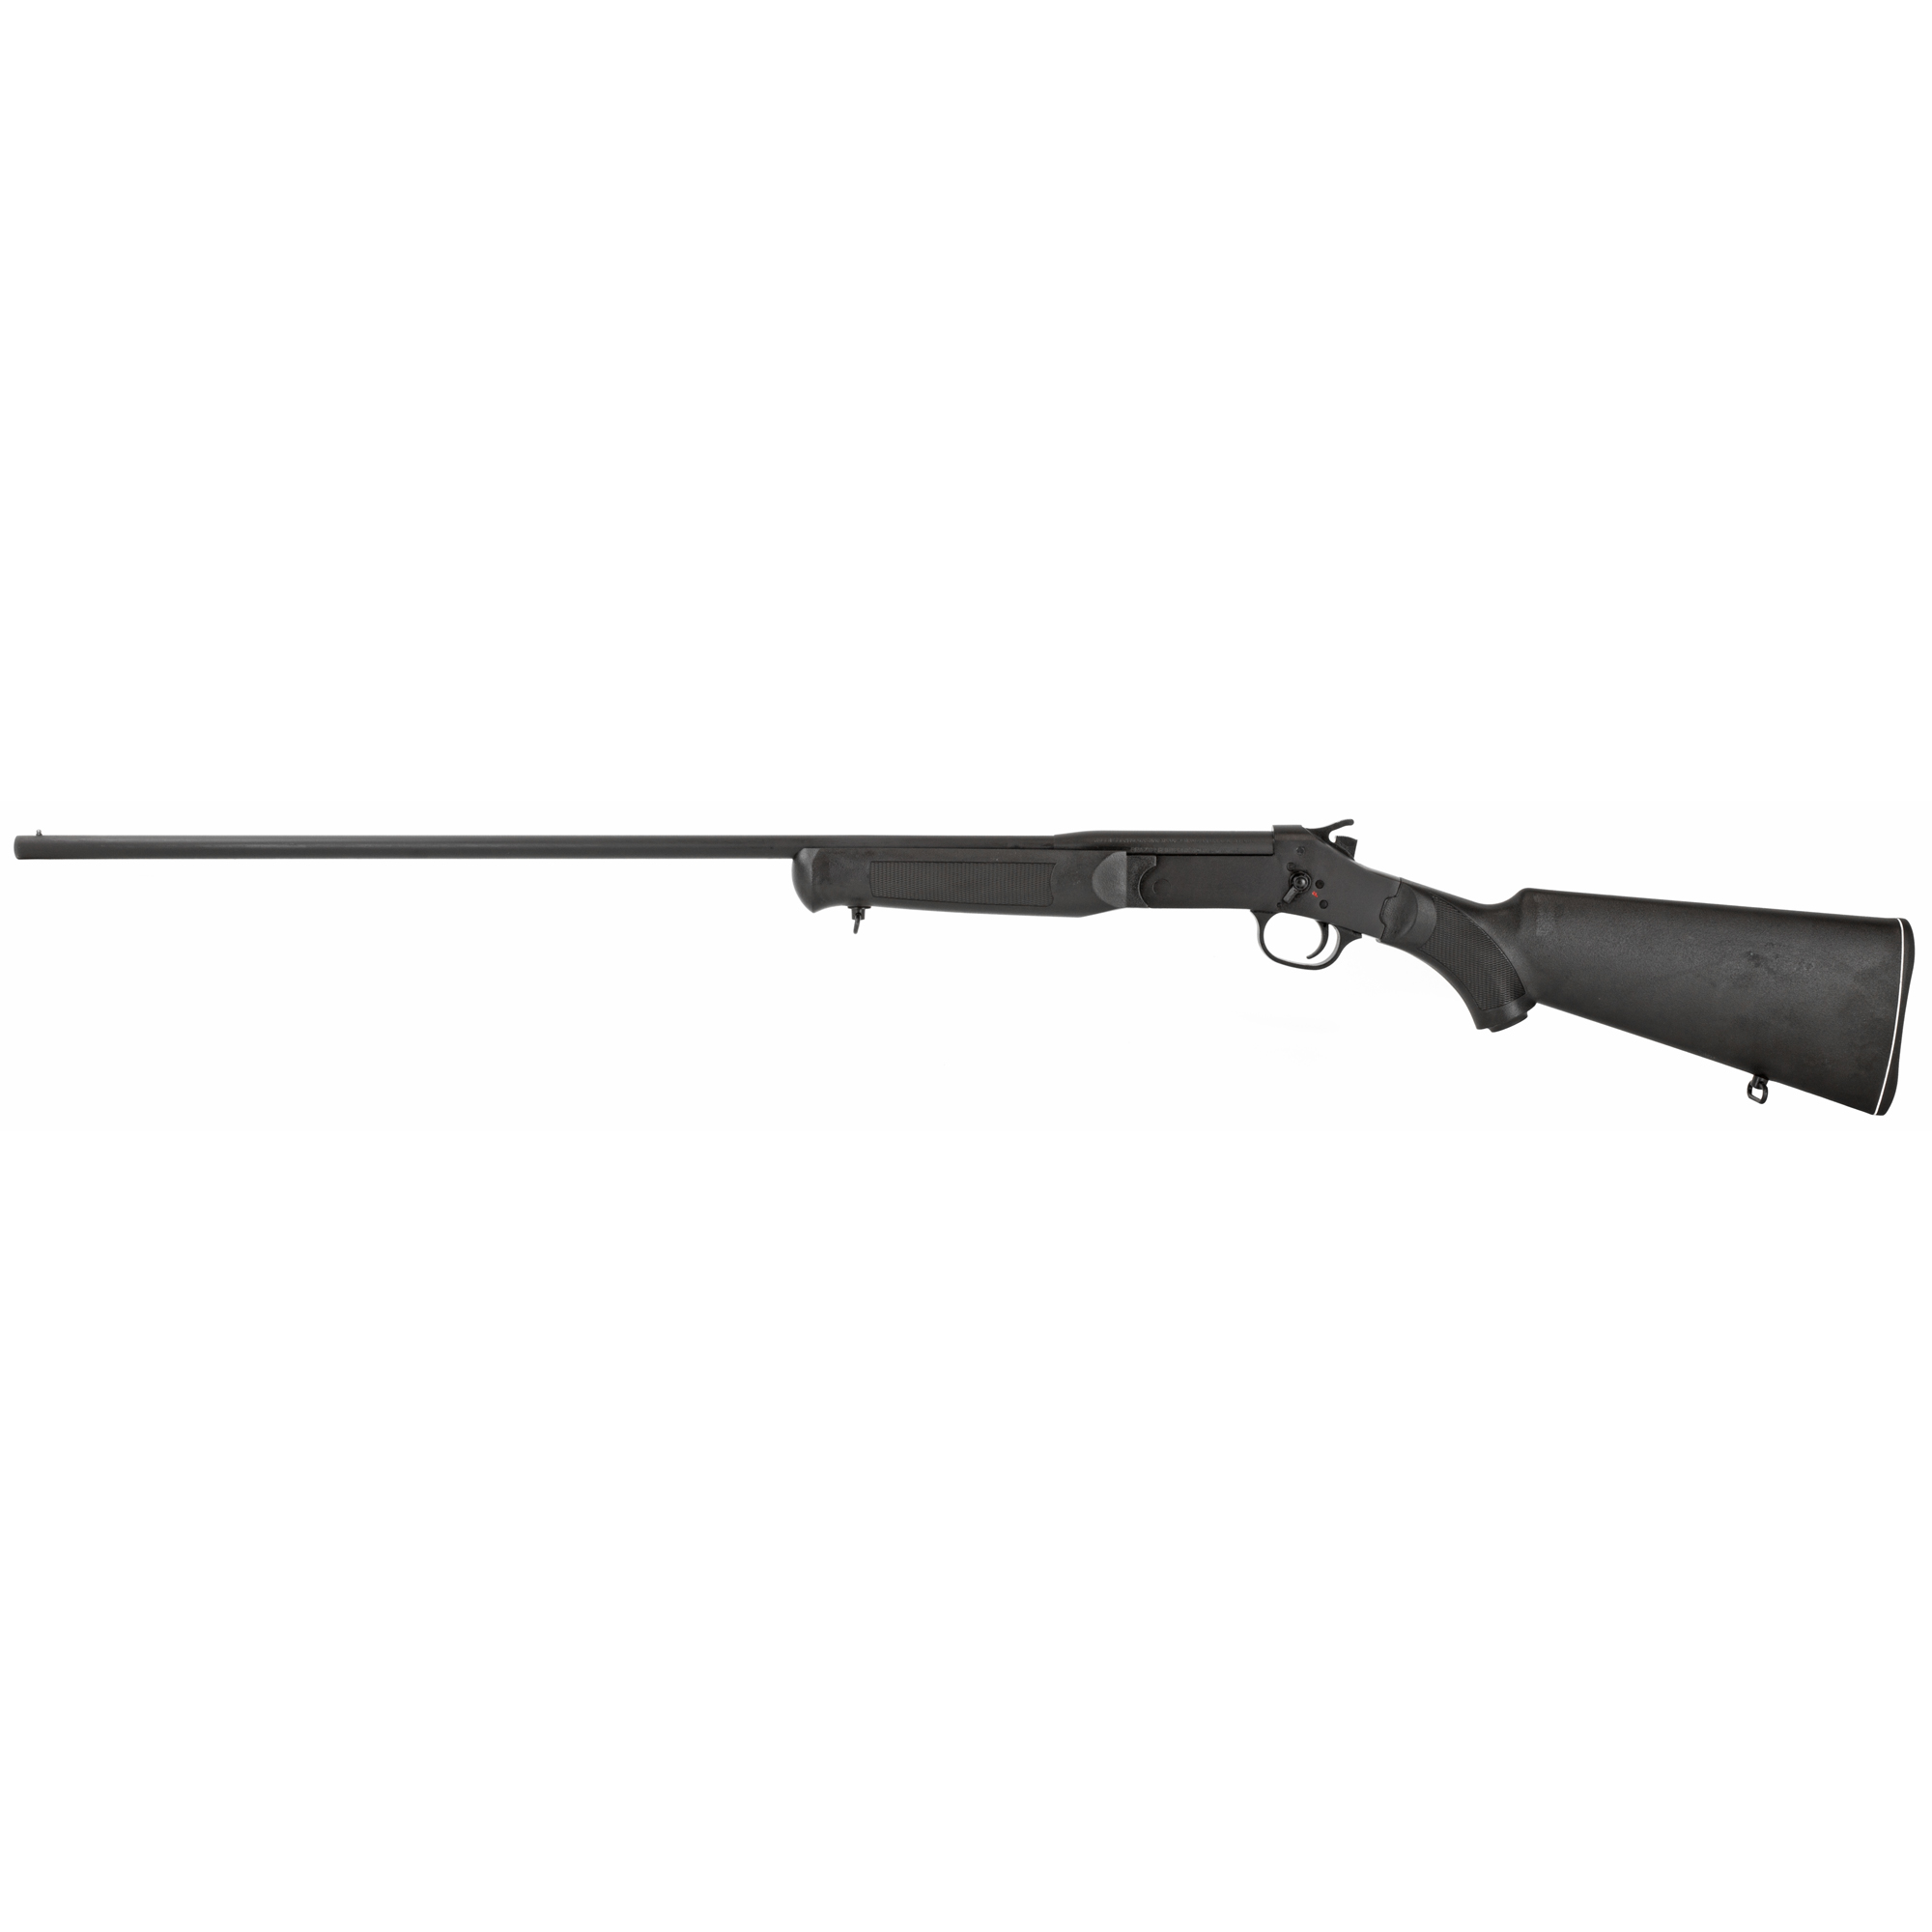 """Rossi shotguns feature a timeless single-shot"""" break-open breech design updated with the most modern safety features imaginable. Each includes a spur hammer"""" transfer bar safety action and an integral linkage system that prevents the action from opening or closing when the hammer is cocked. Whether you're a beginner or just looking for dependable"""" straightforward long gun"""" Rossi won't disappoint."""